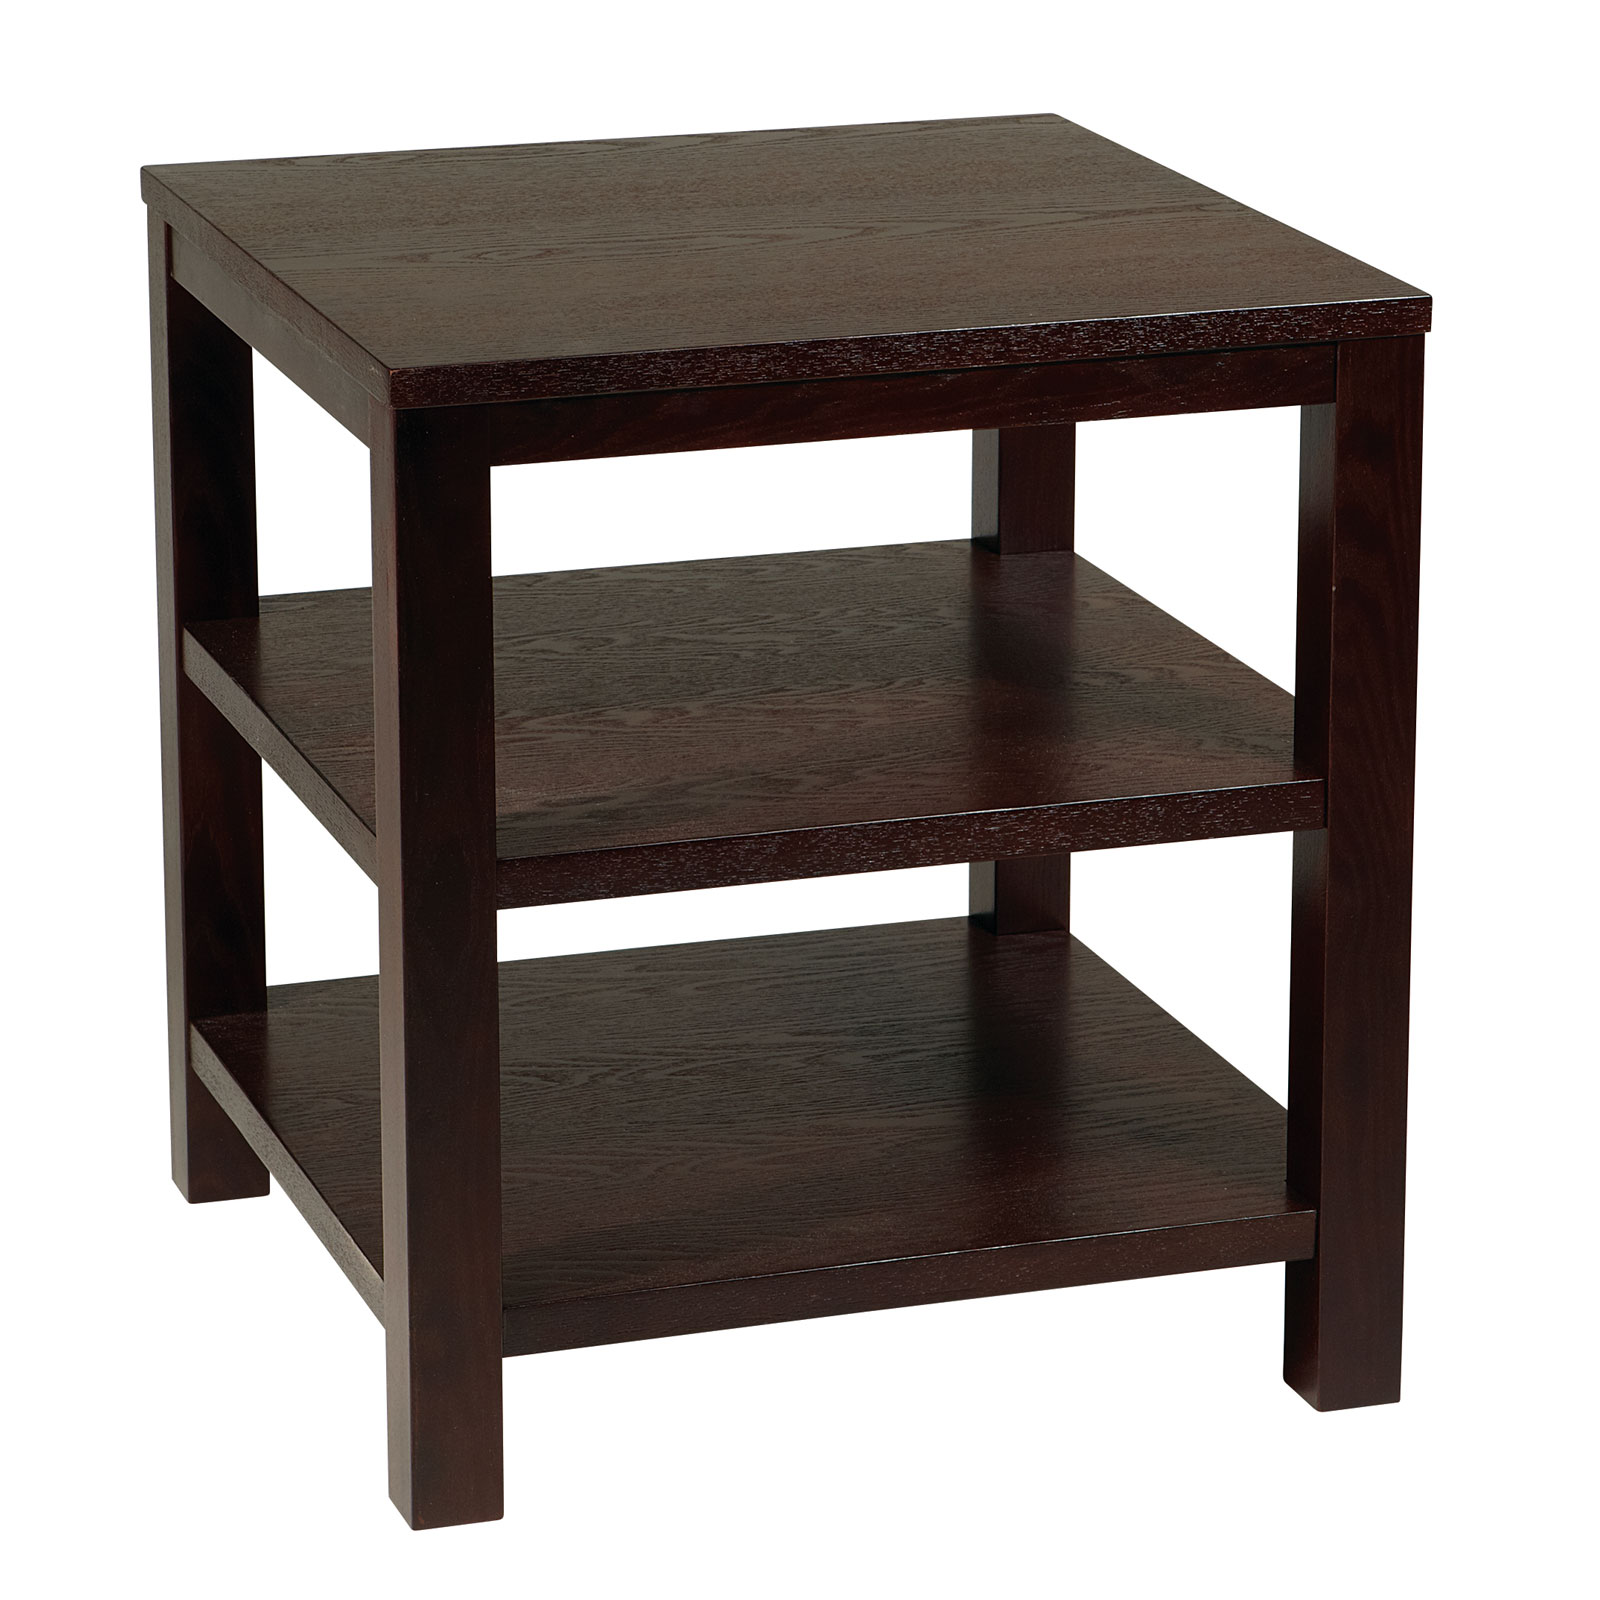 Merge square end table by avenue six in side tables for Square side table